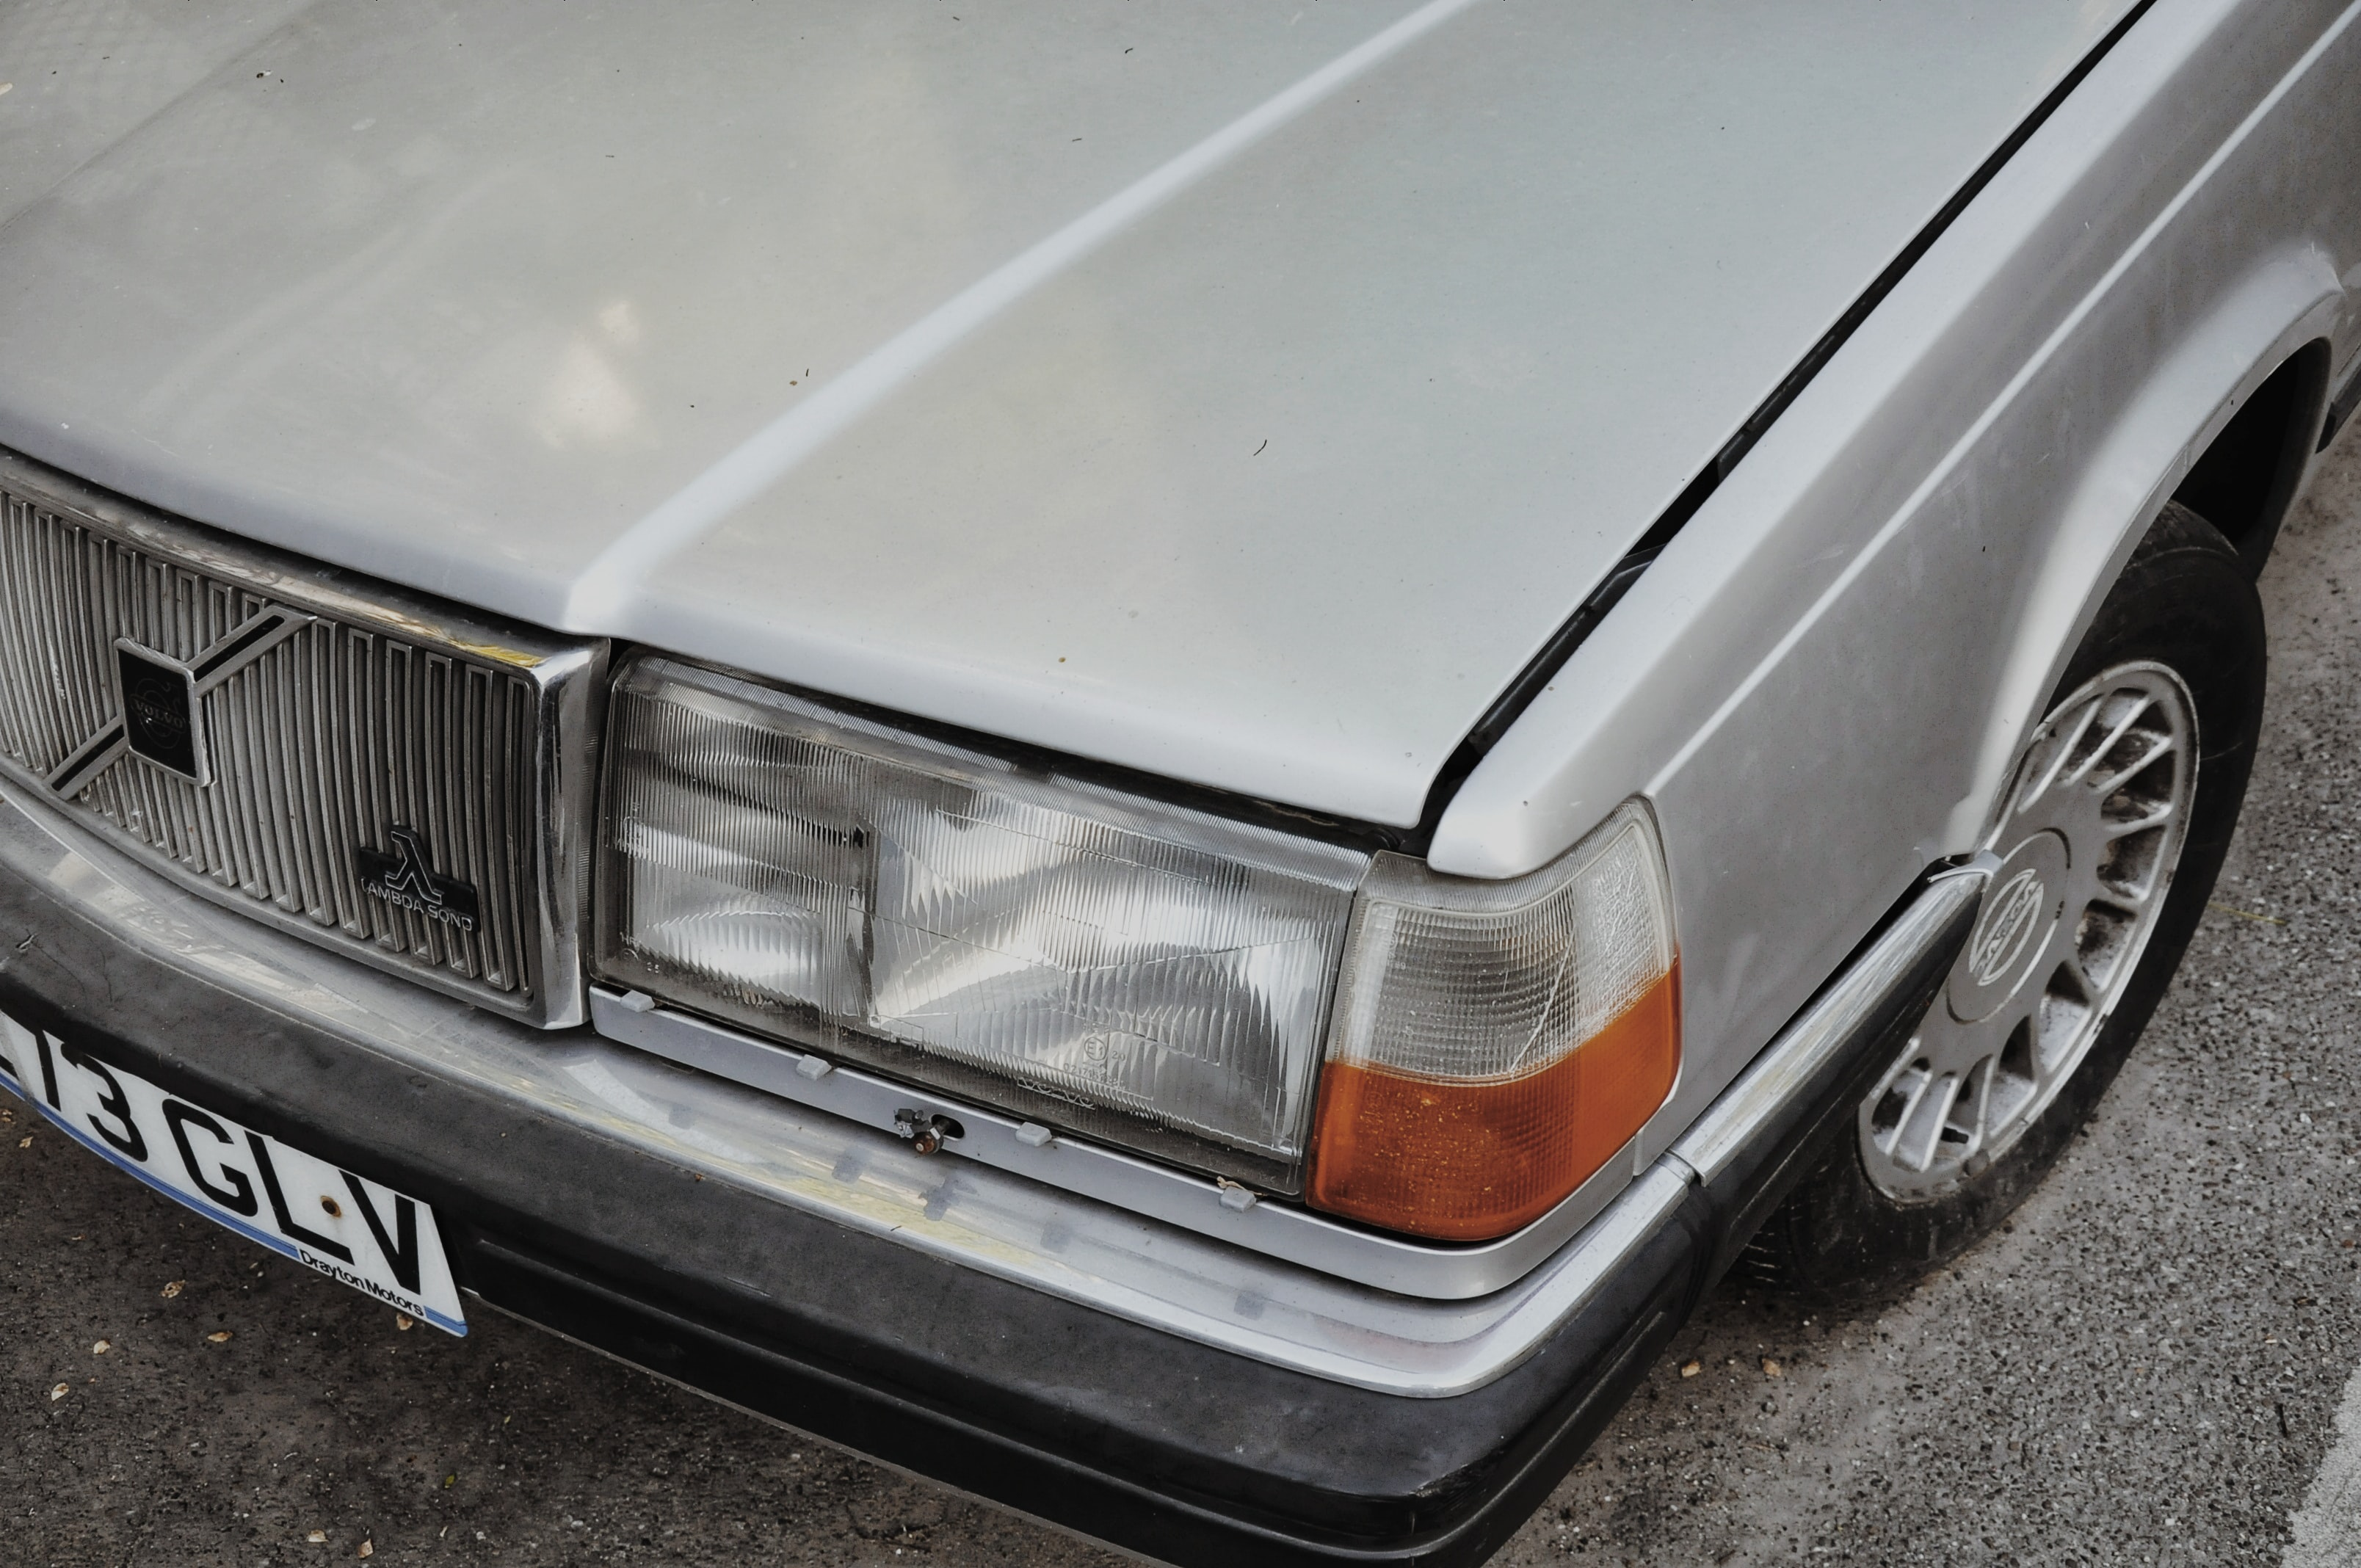 close up photo of silver Volvo car